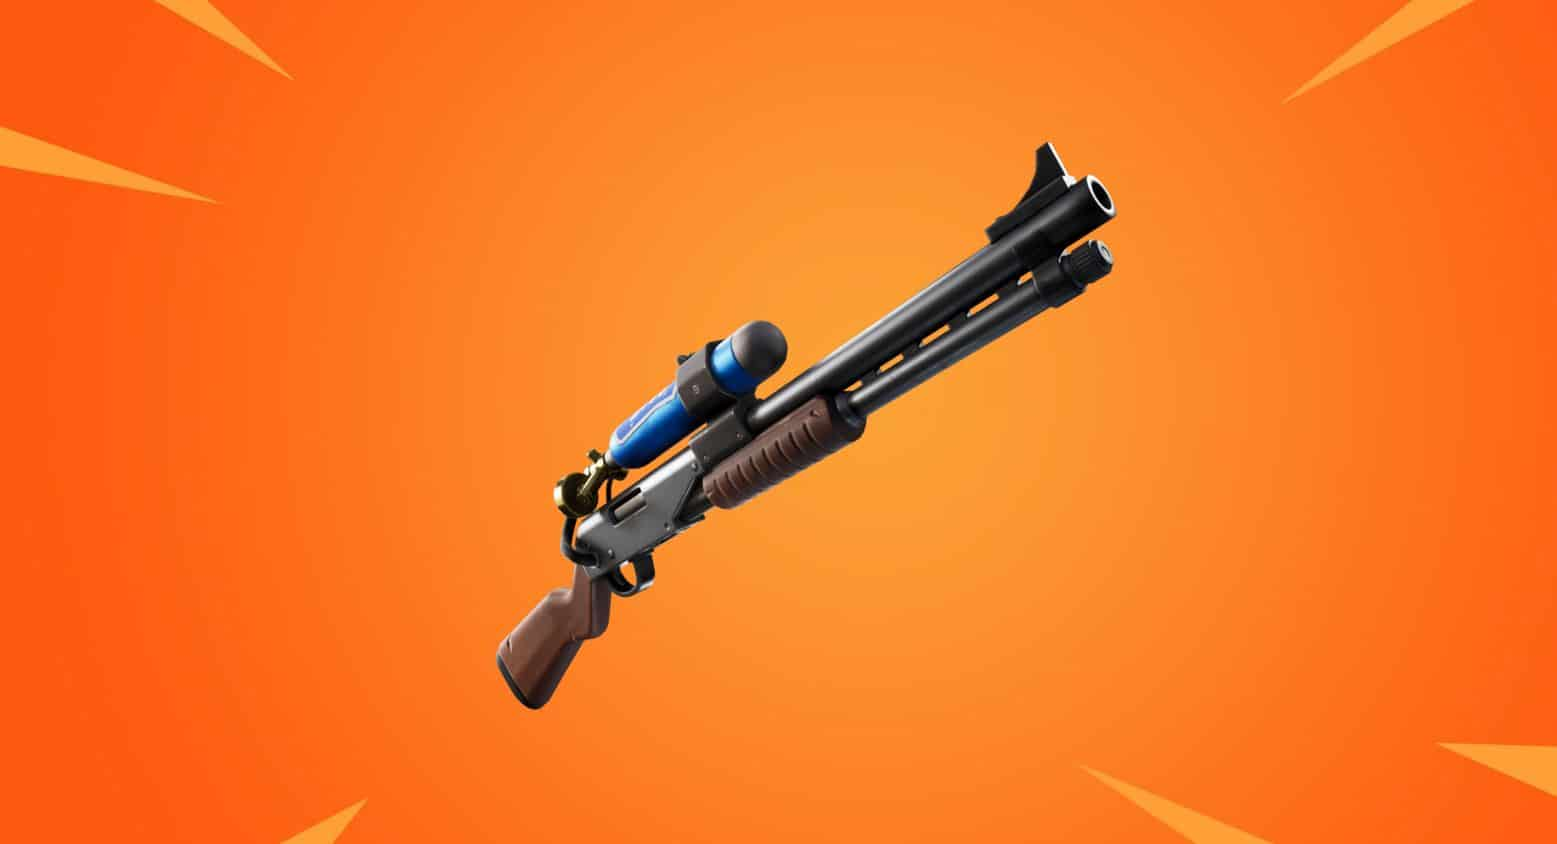 A close-up shot of the Charge Shotgun, locked and loaded.